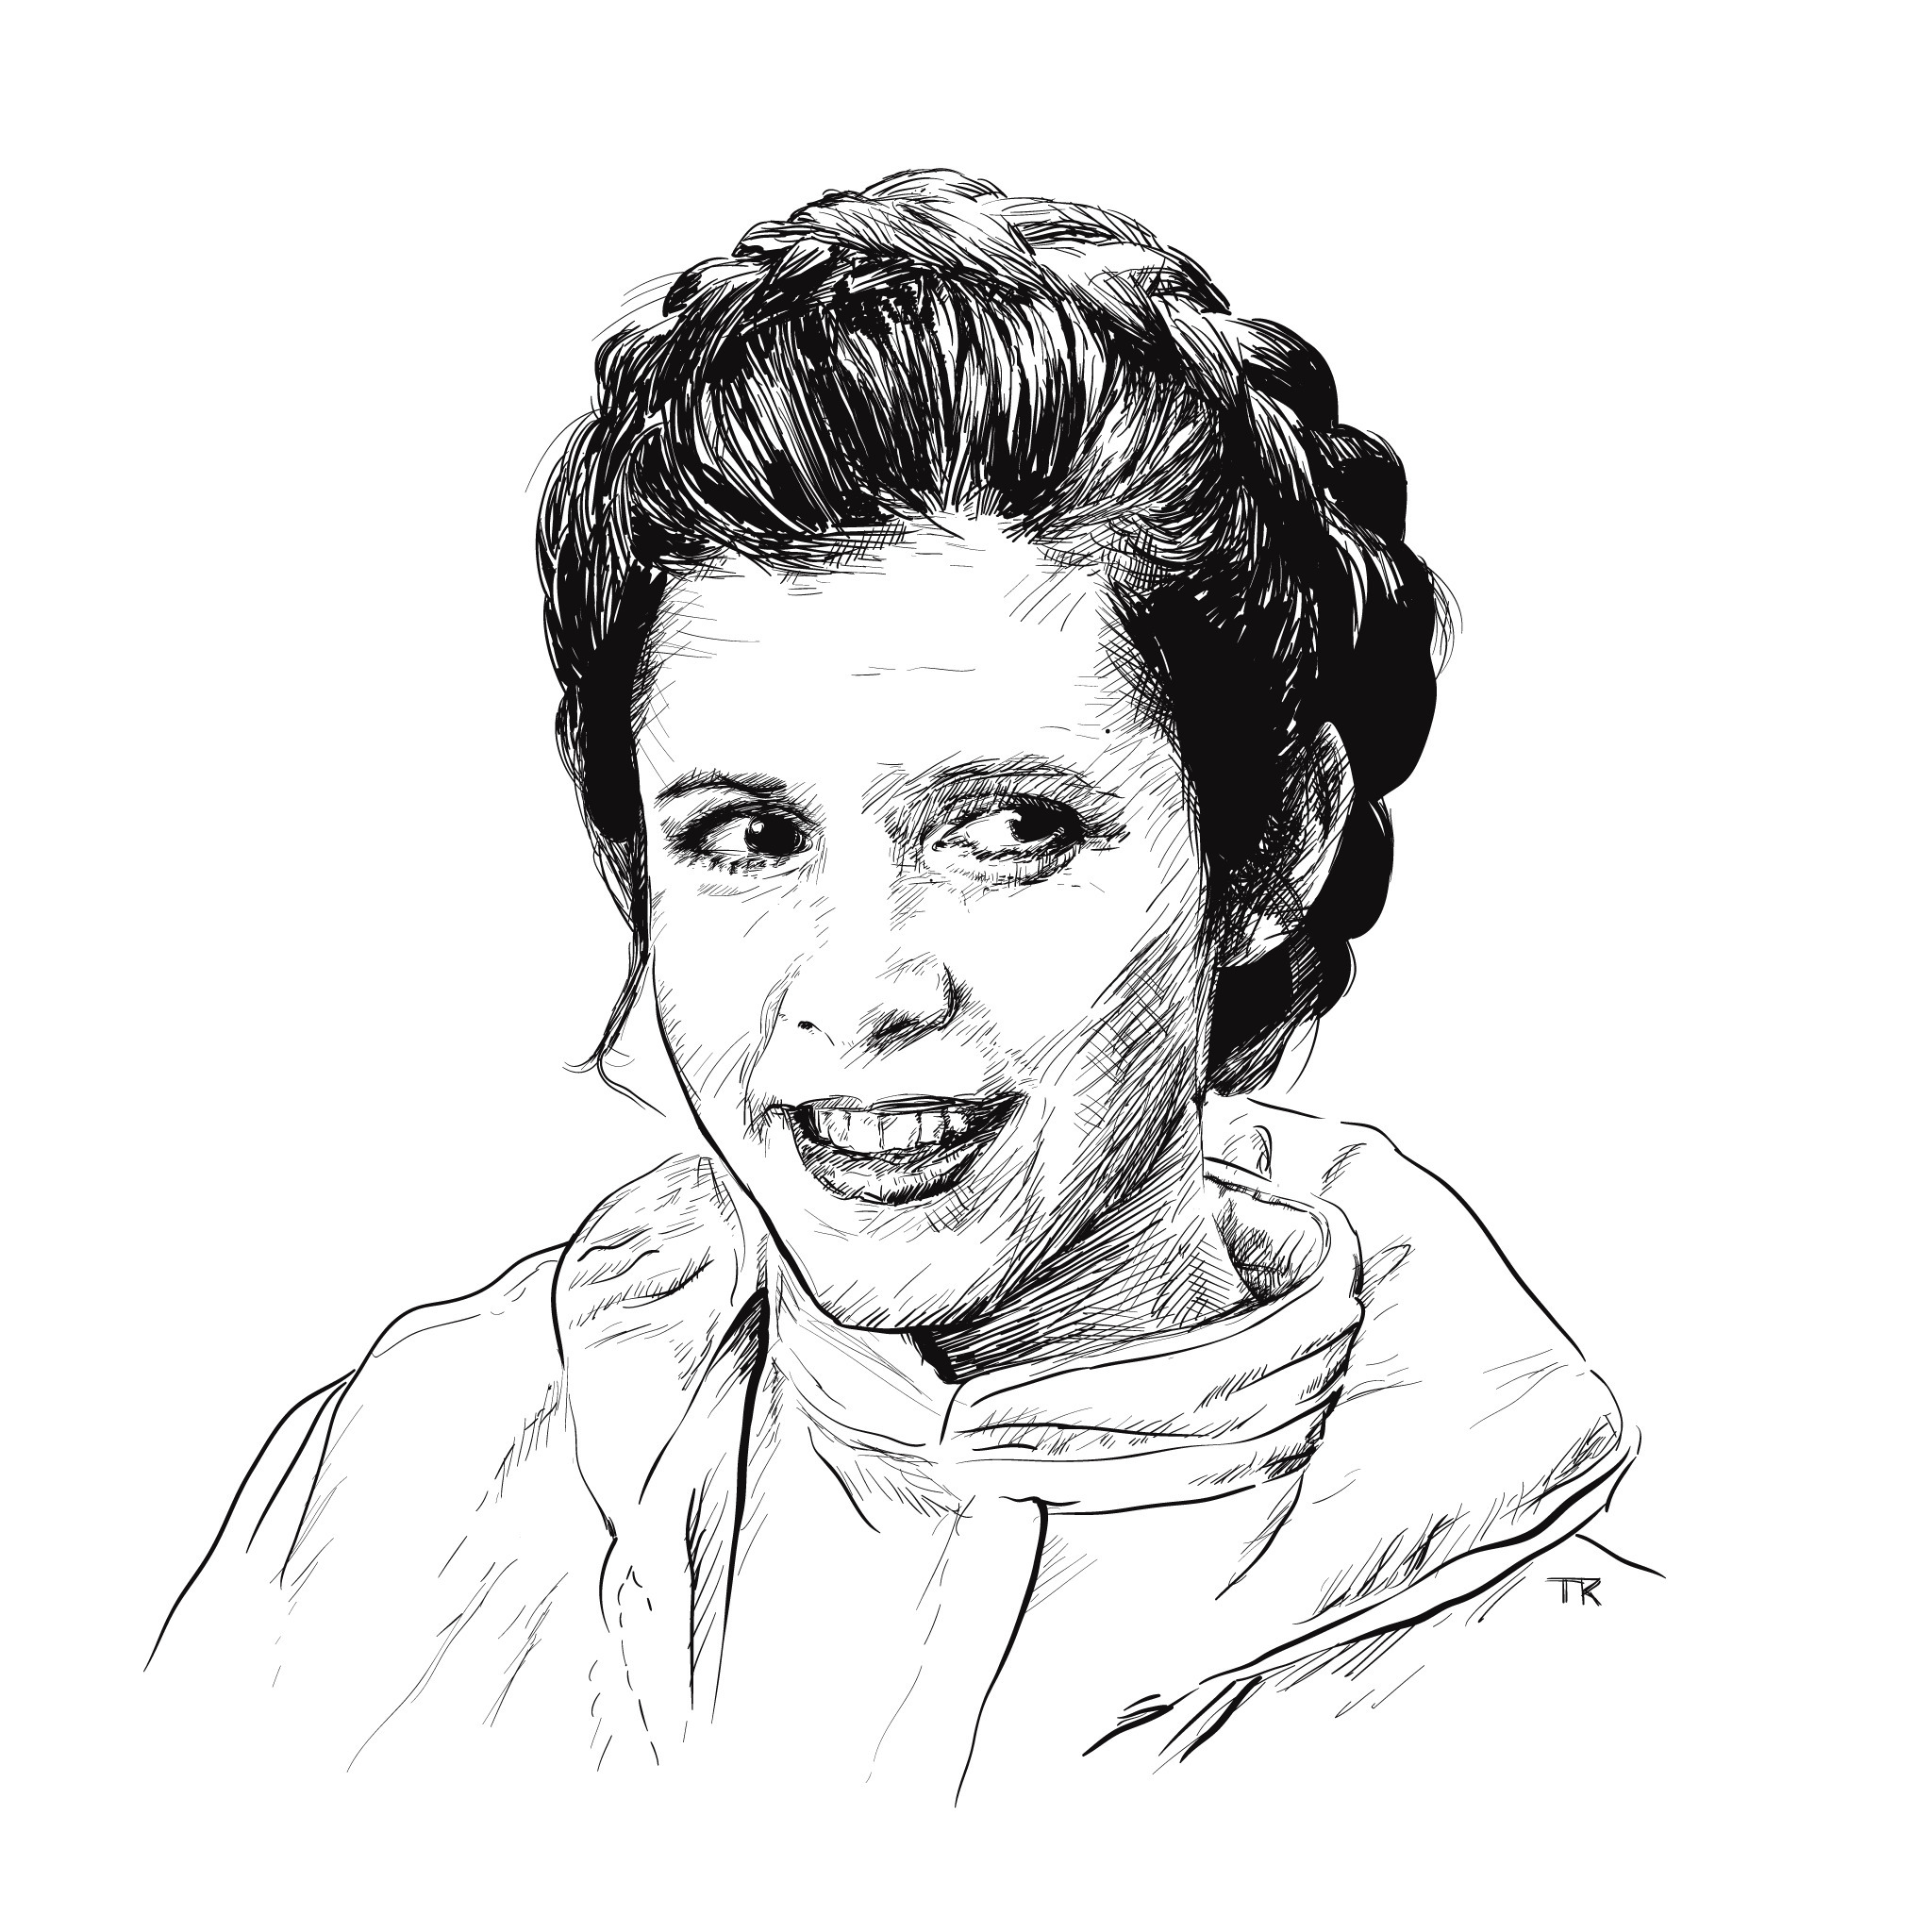 Remembering Carrie Fisher, by @tomralston on Ello